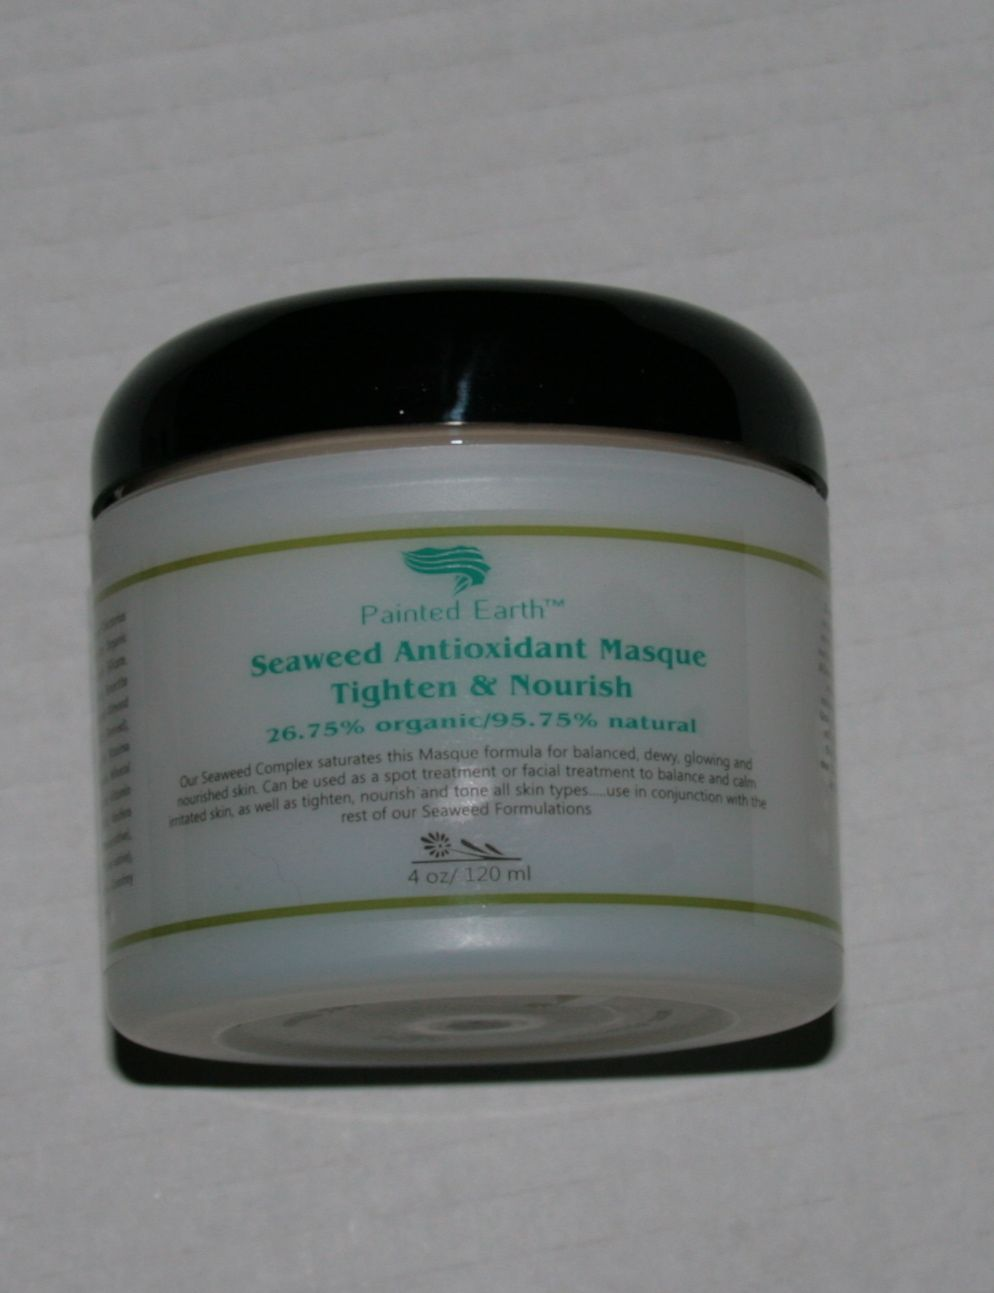 Seaweed antioxidant masque. Thightens and nourishes your skin